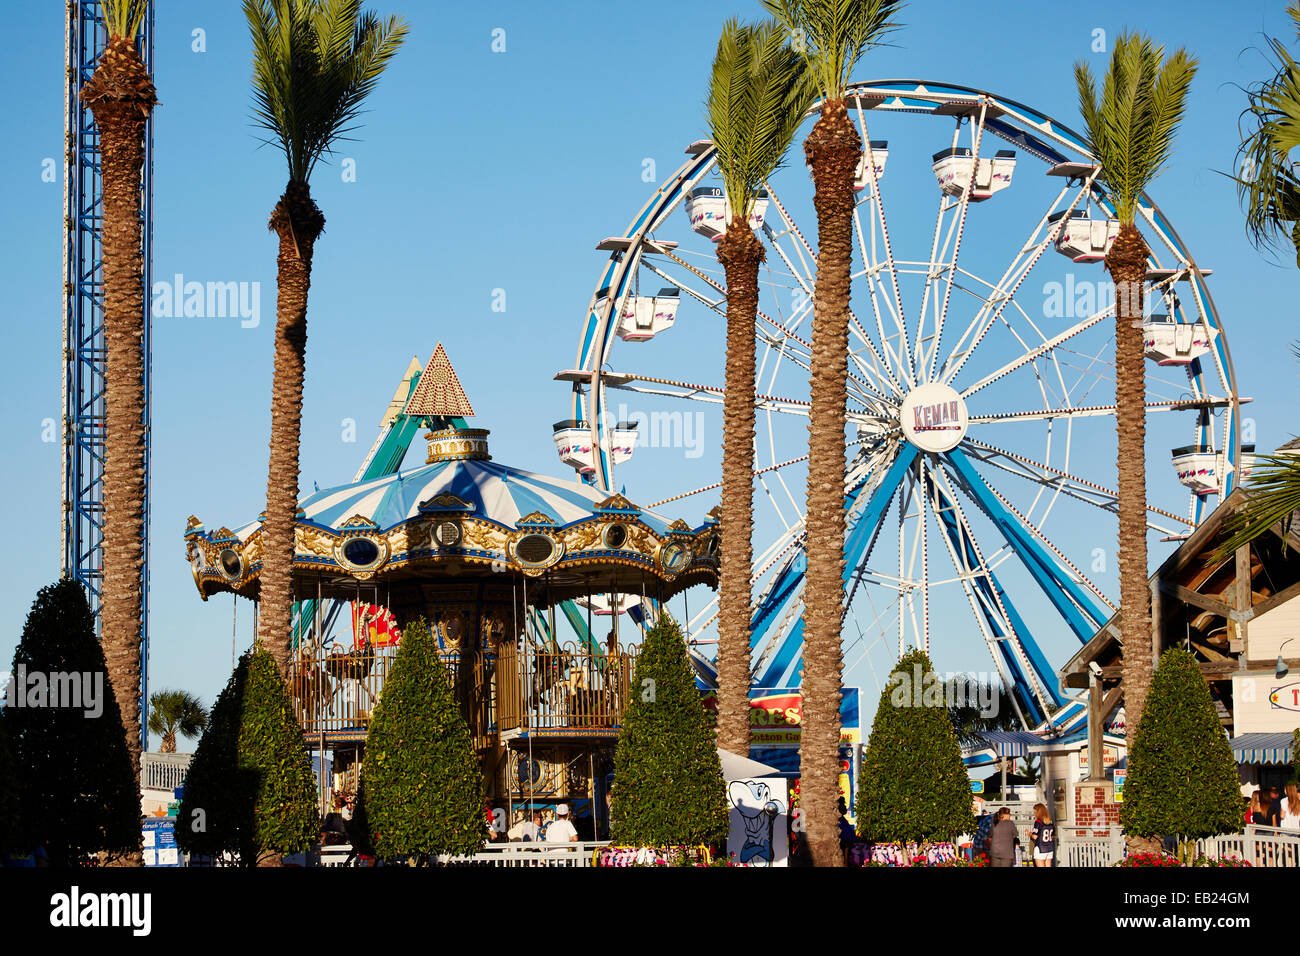 Attractions at Kemah Boardwalk Houston Texas USA Stock Photo